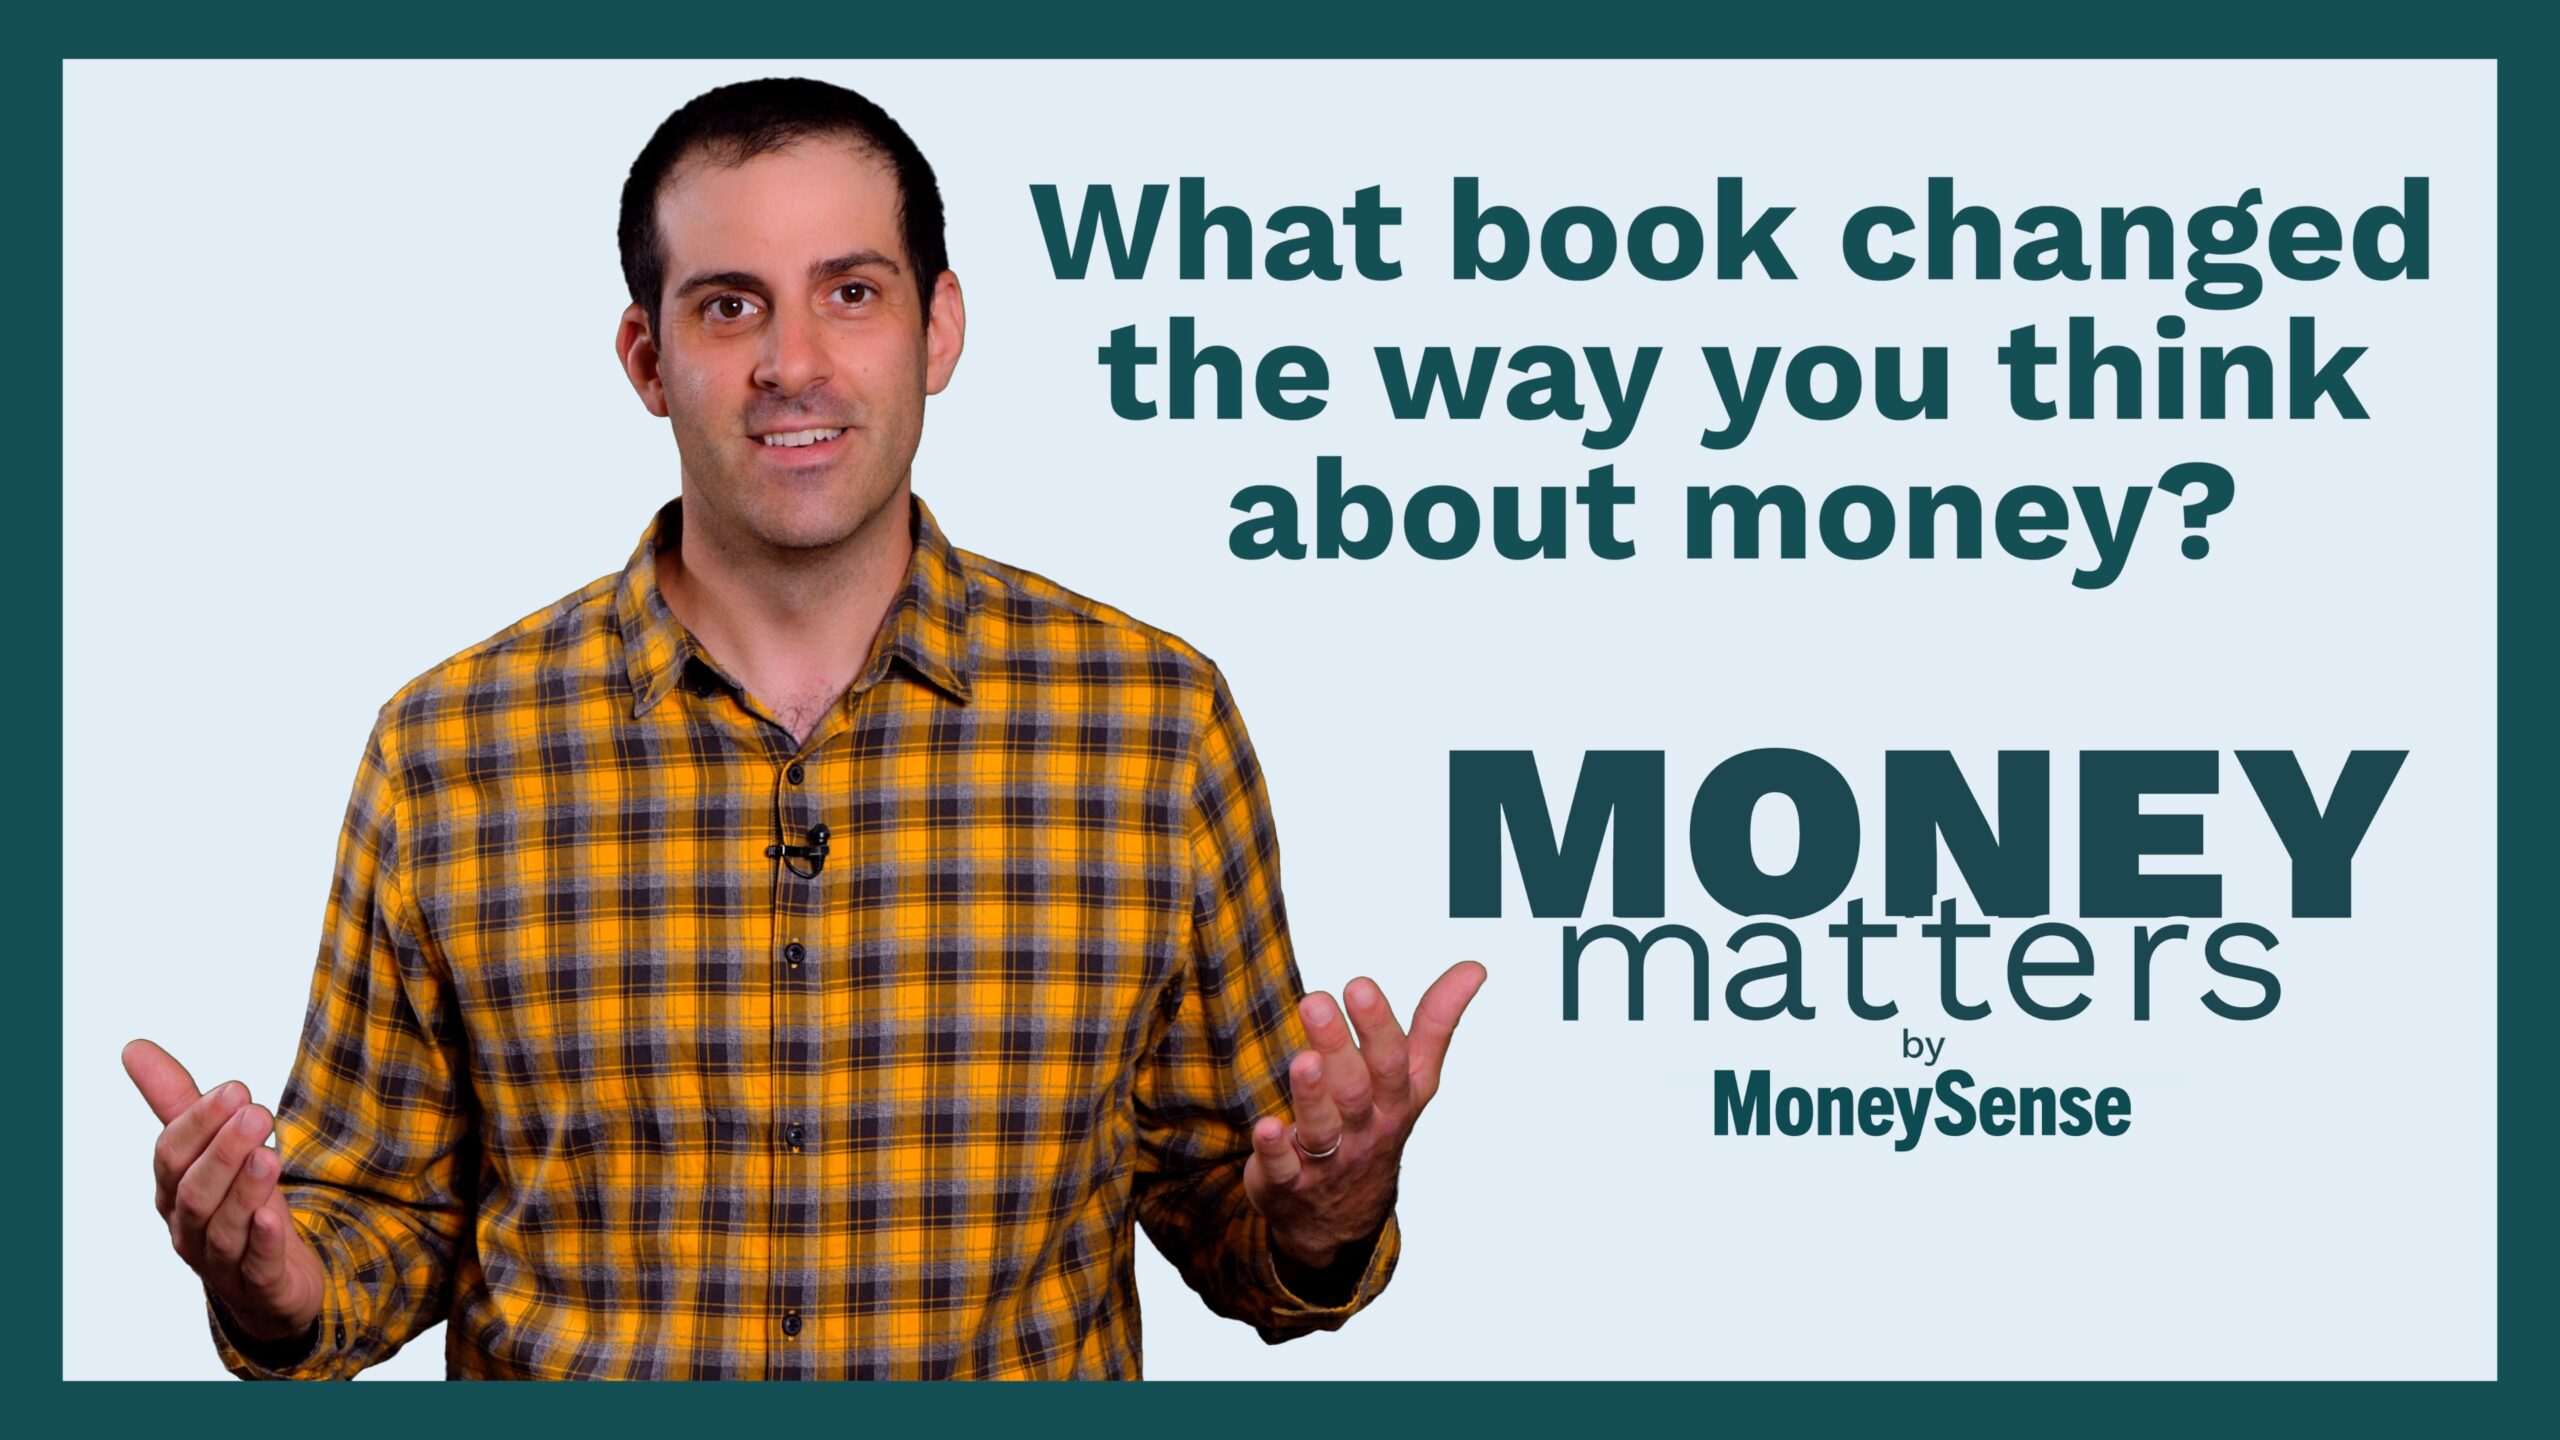 money matters what book changed the way you think about money